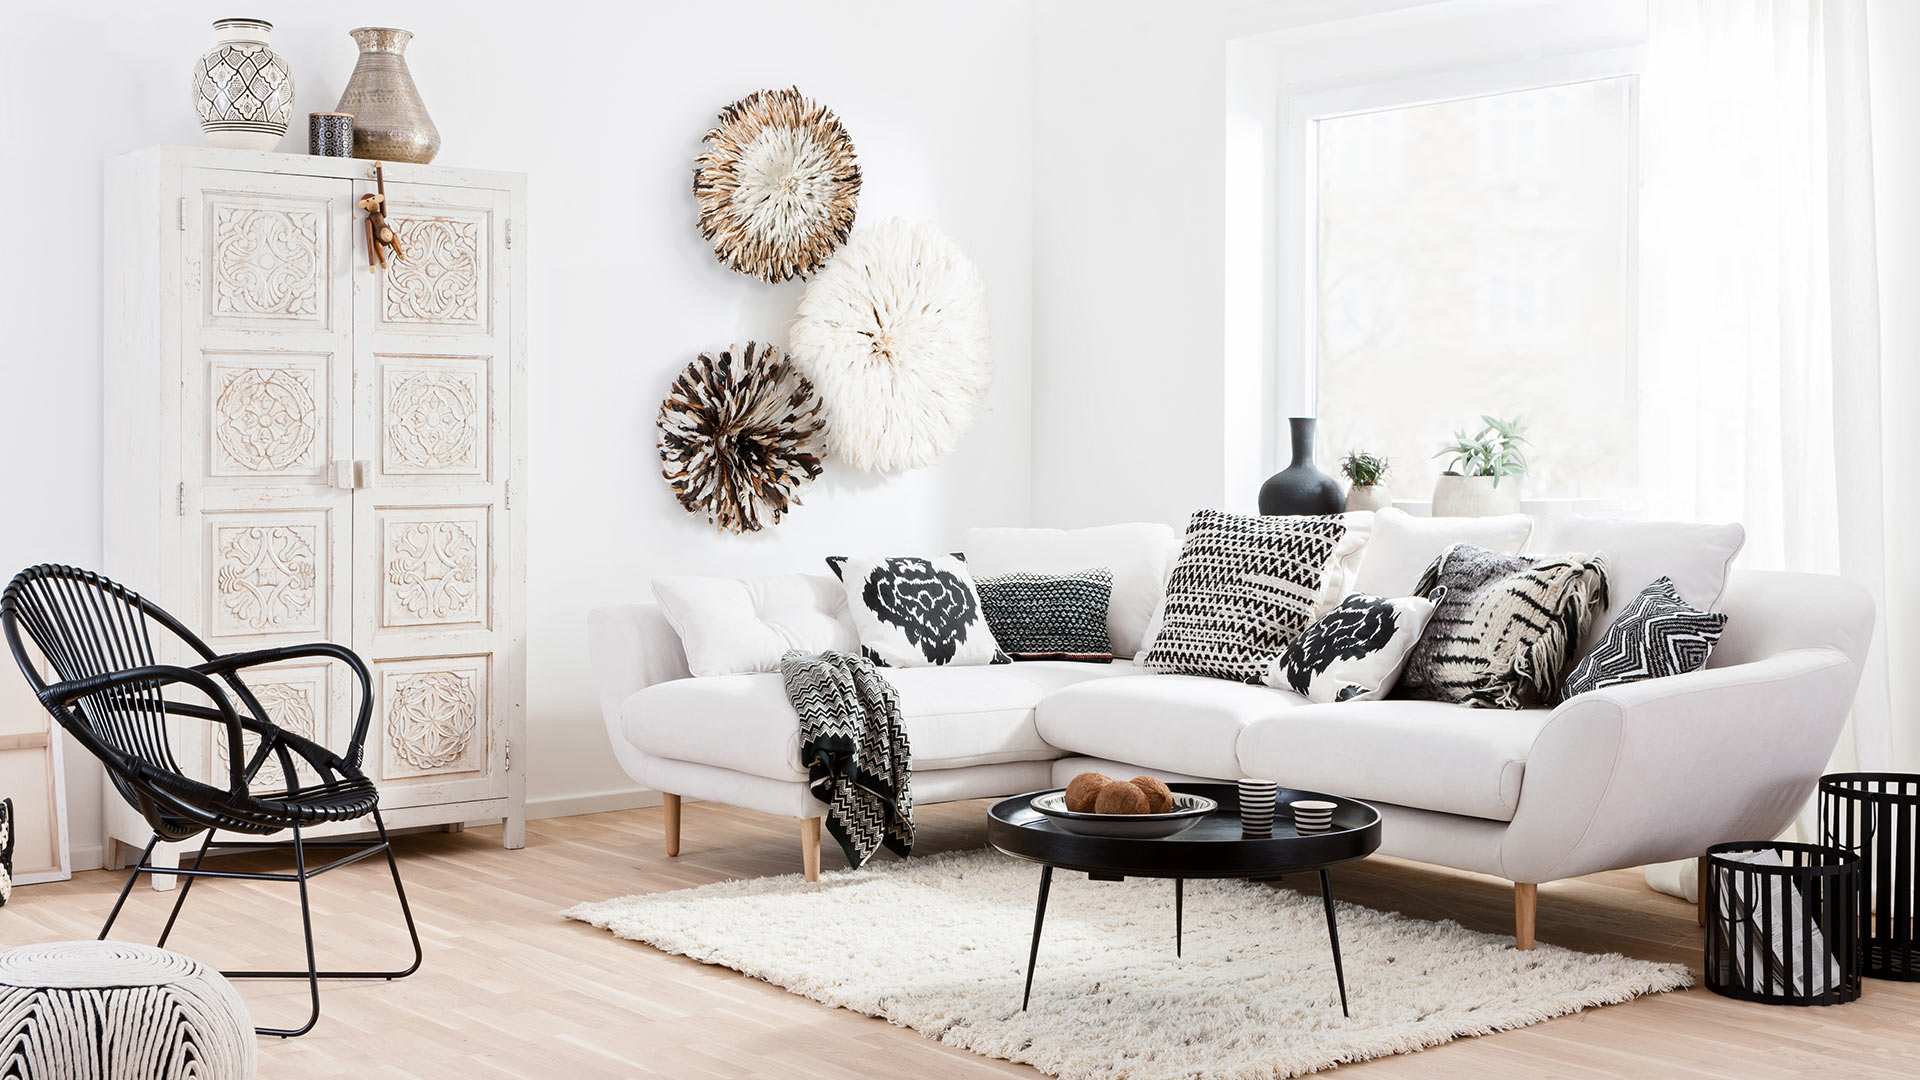 Couchtisch Ethno Ethno Black & White | Shop The Look ▷westwingnow